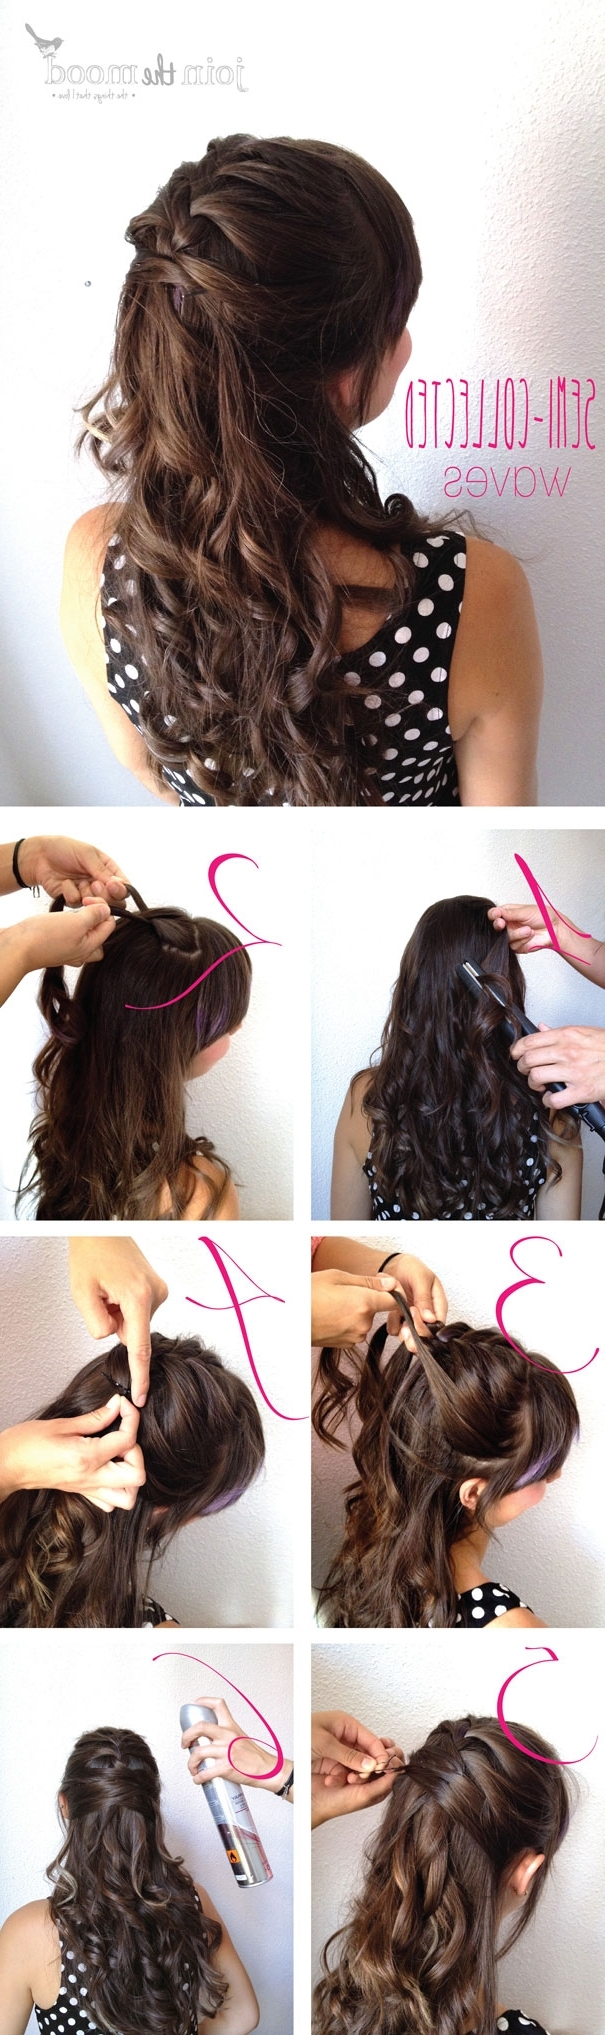 13 Half Up Half Down Hair Tutorials Inside Diy Half Updo Hairstyles For Long Hair (View 3 of 15)